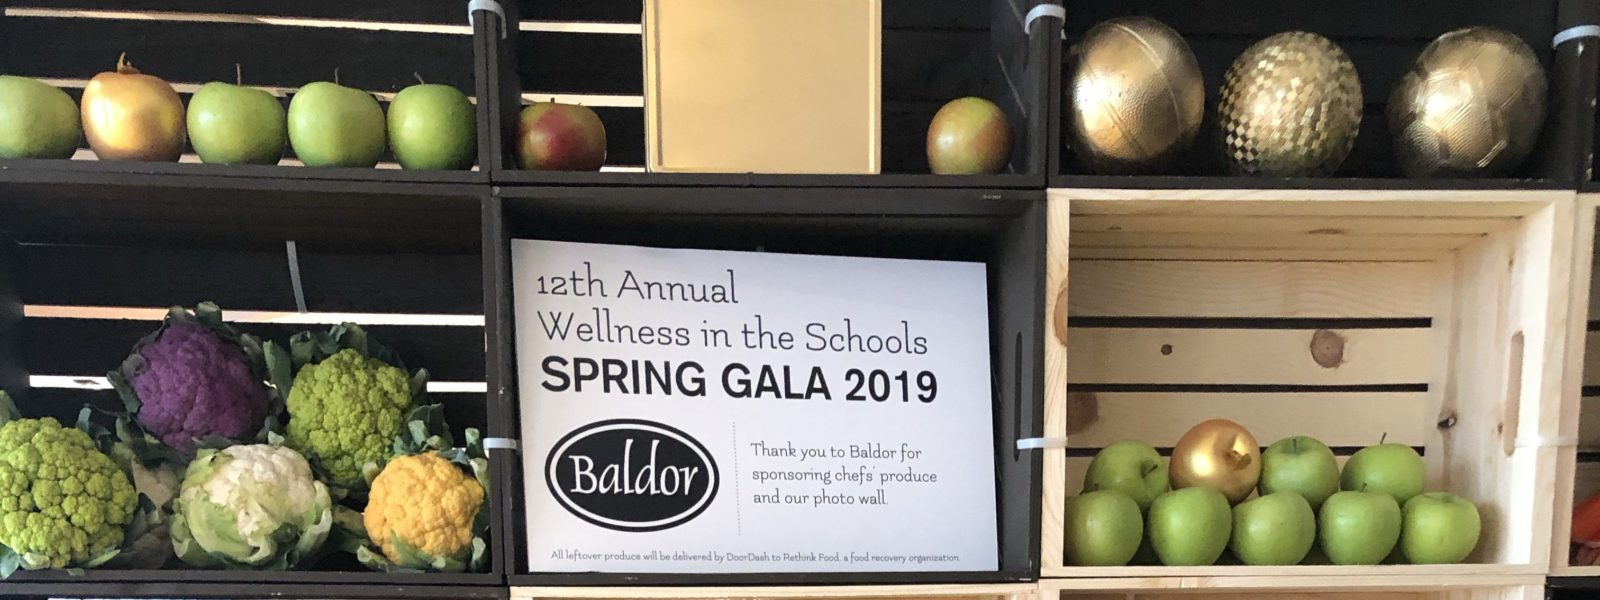 Wellness In The Schools Gala sign in wall with apples and cauliflowers.